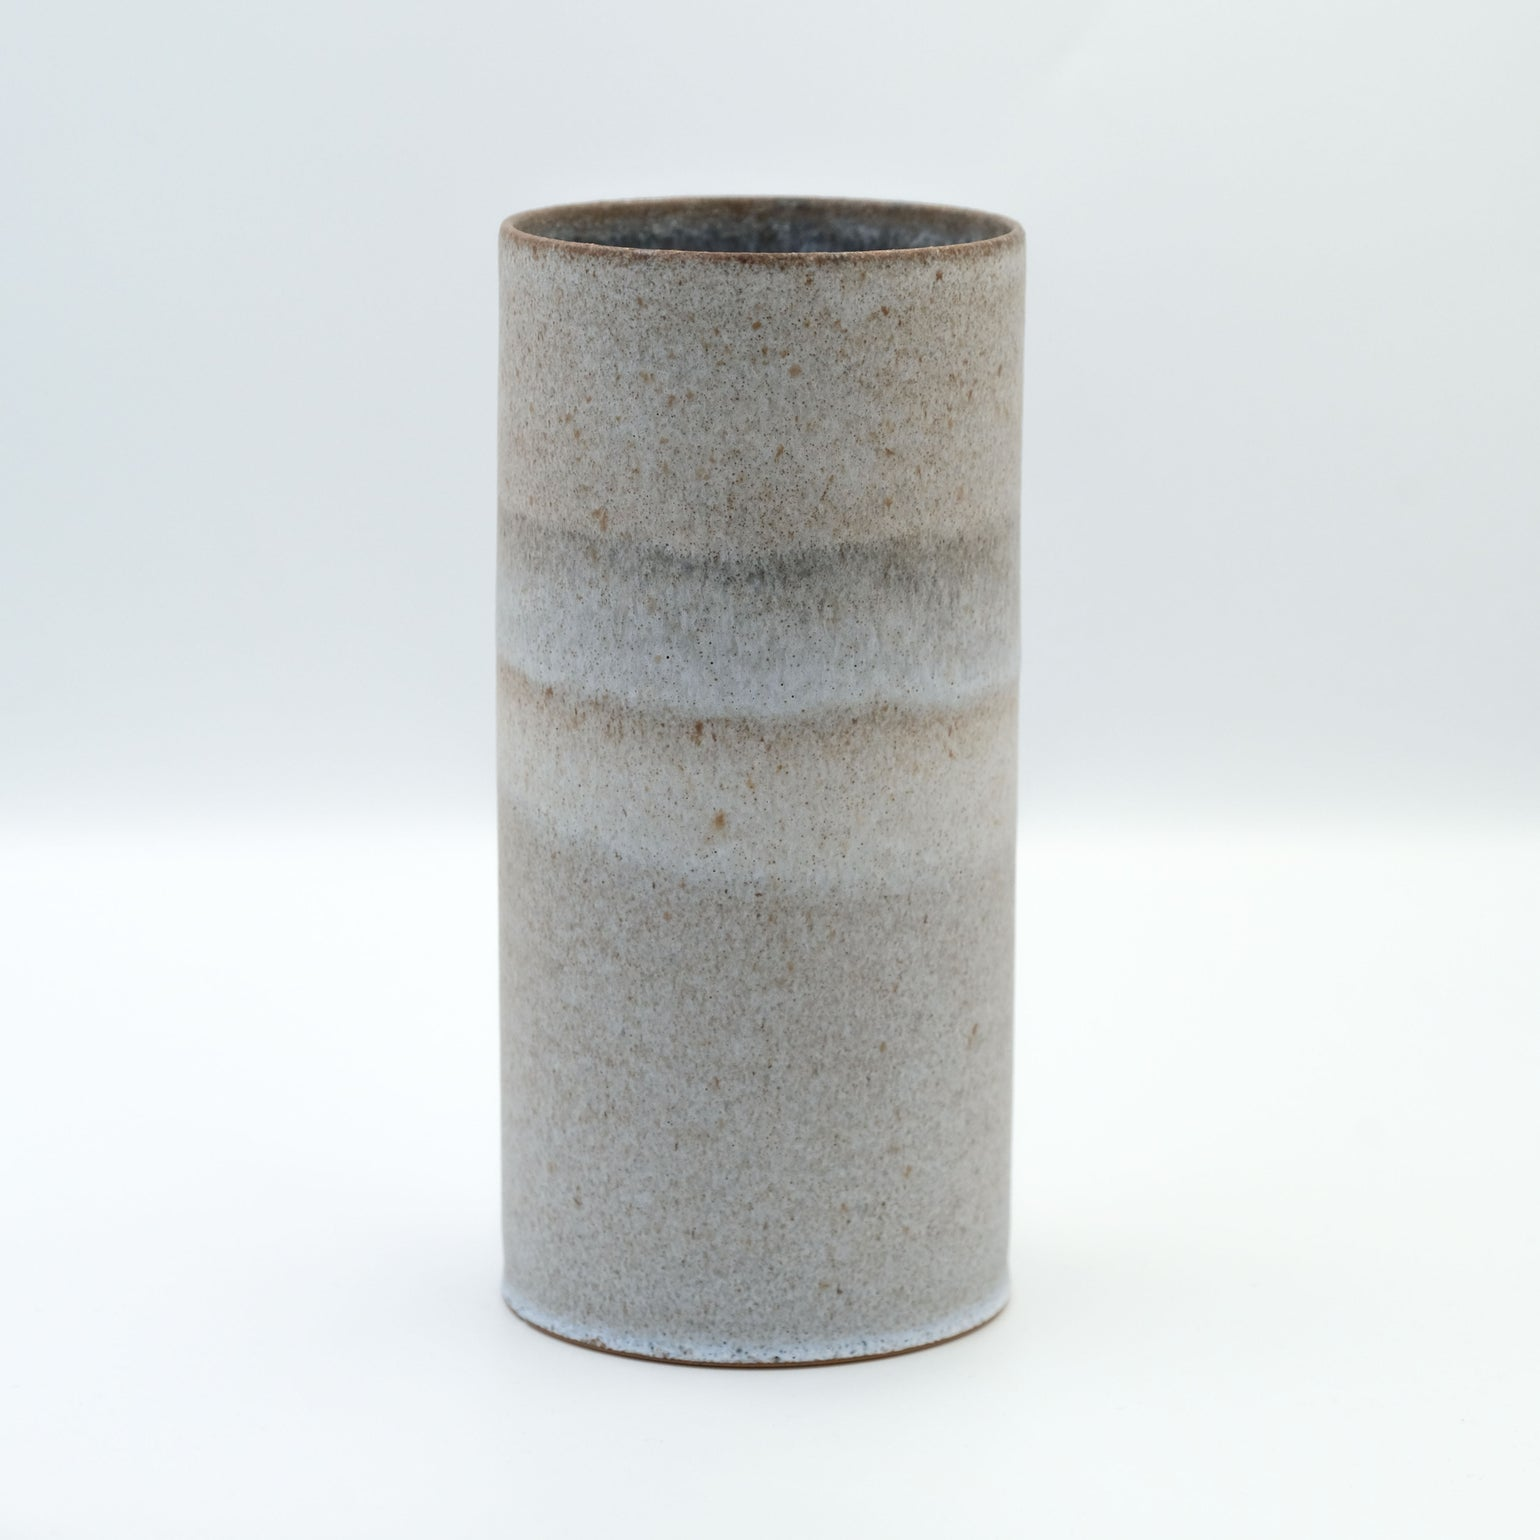 Image of LARGE CYLINDER IN YELLOW STONEWARE WITH LIGHT BLUE GLAZE